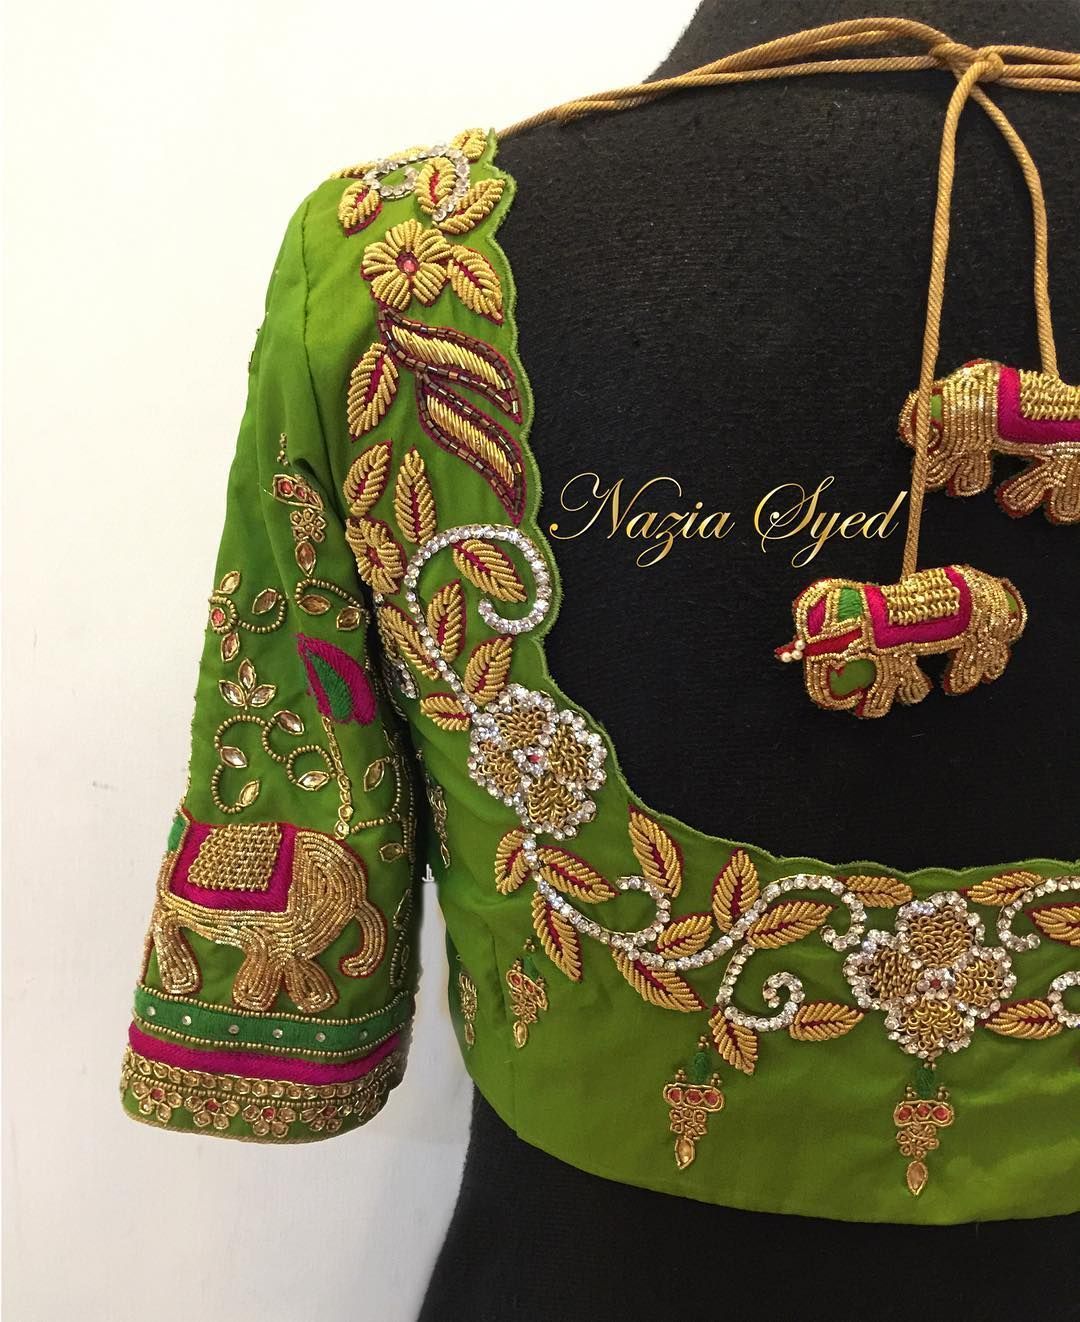 967ad13f384cfd Leaf Green Elephant Bridal Blouse. Stunning leaf green bridal designer  blouse with floret lata design hand embroidery bead and kundan work.